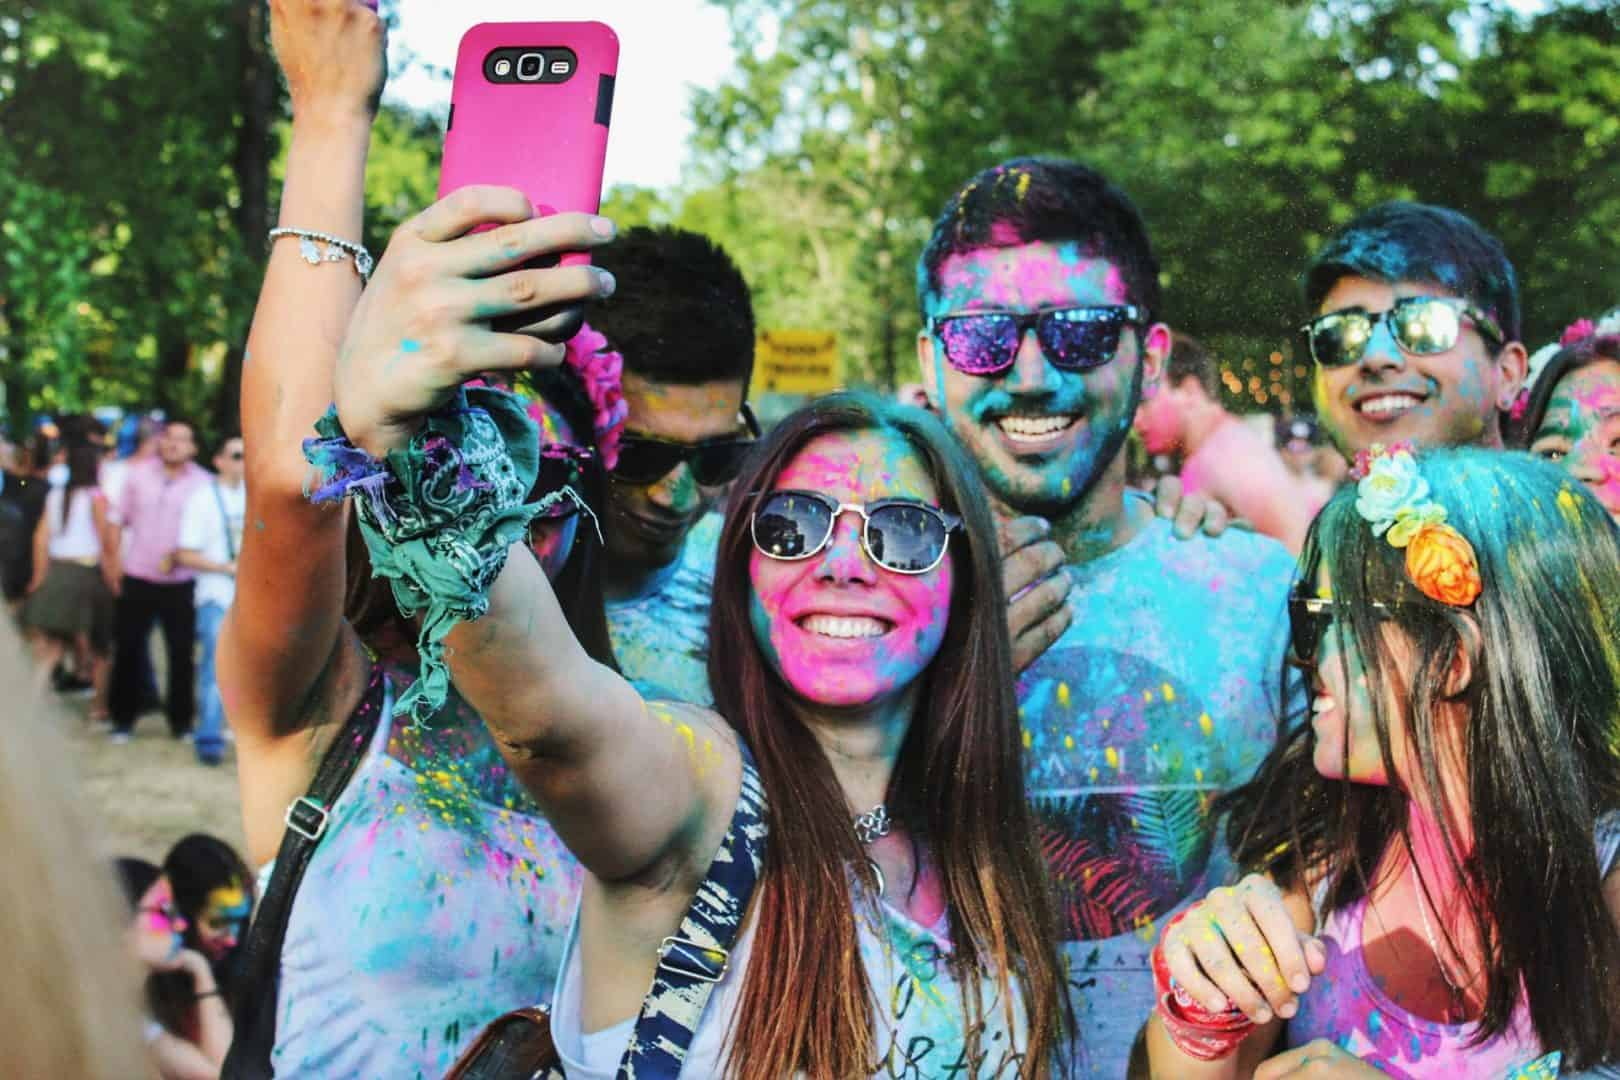 Are Smartphone Makers Putting All Their Efforts In 'Selfies'? - 5